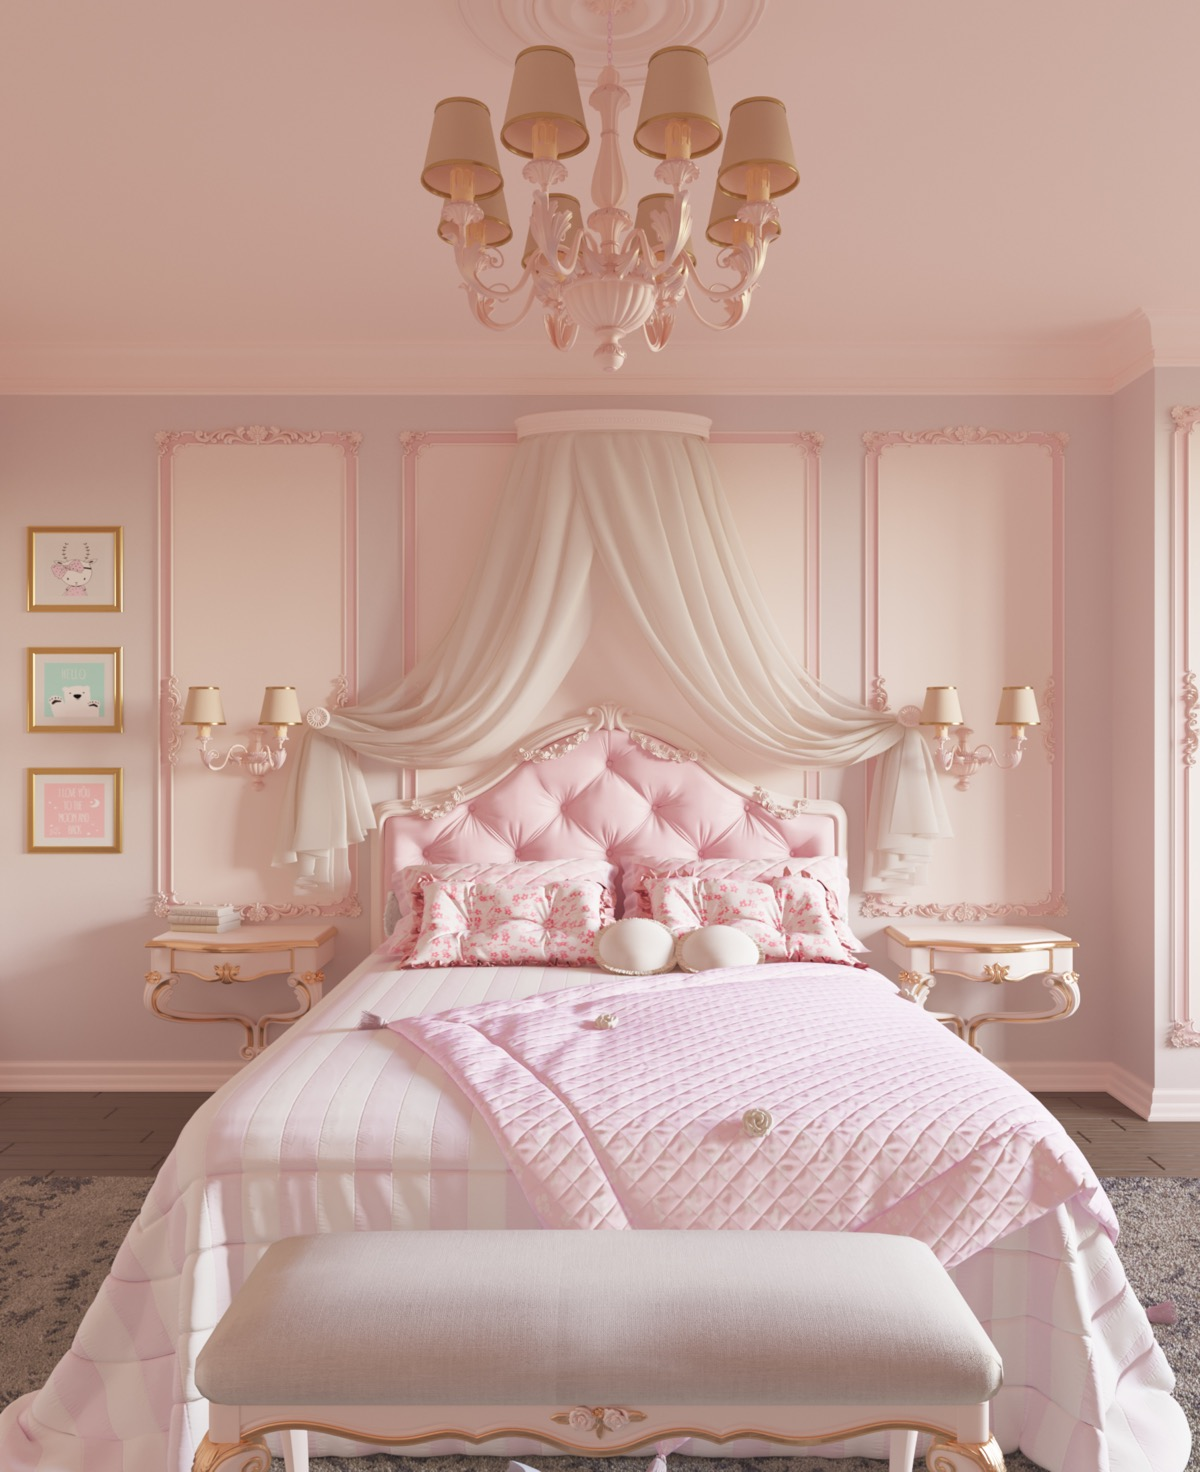 8 Pink Bedrooms With Images, Tips And Accessories To Help You